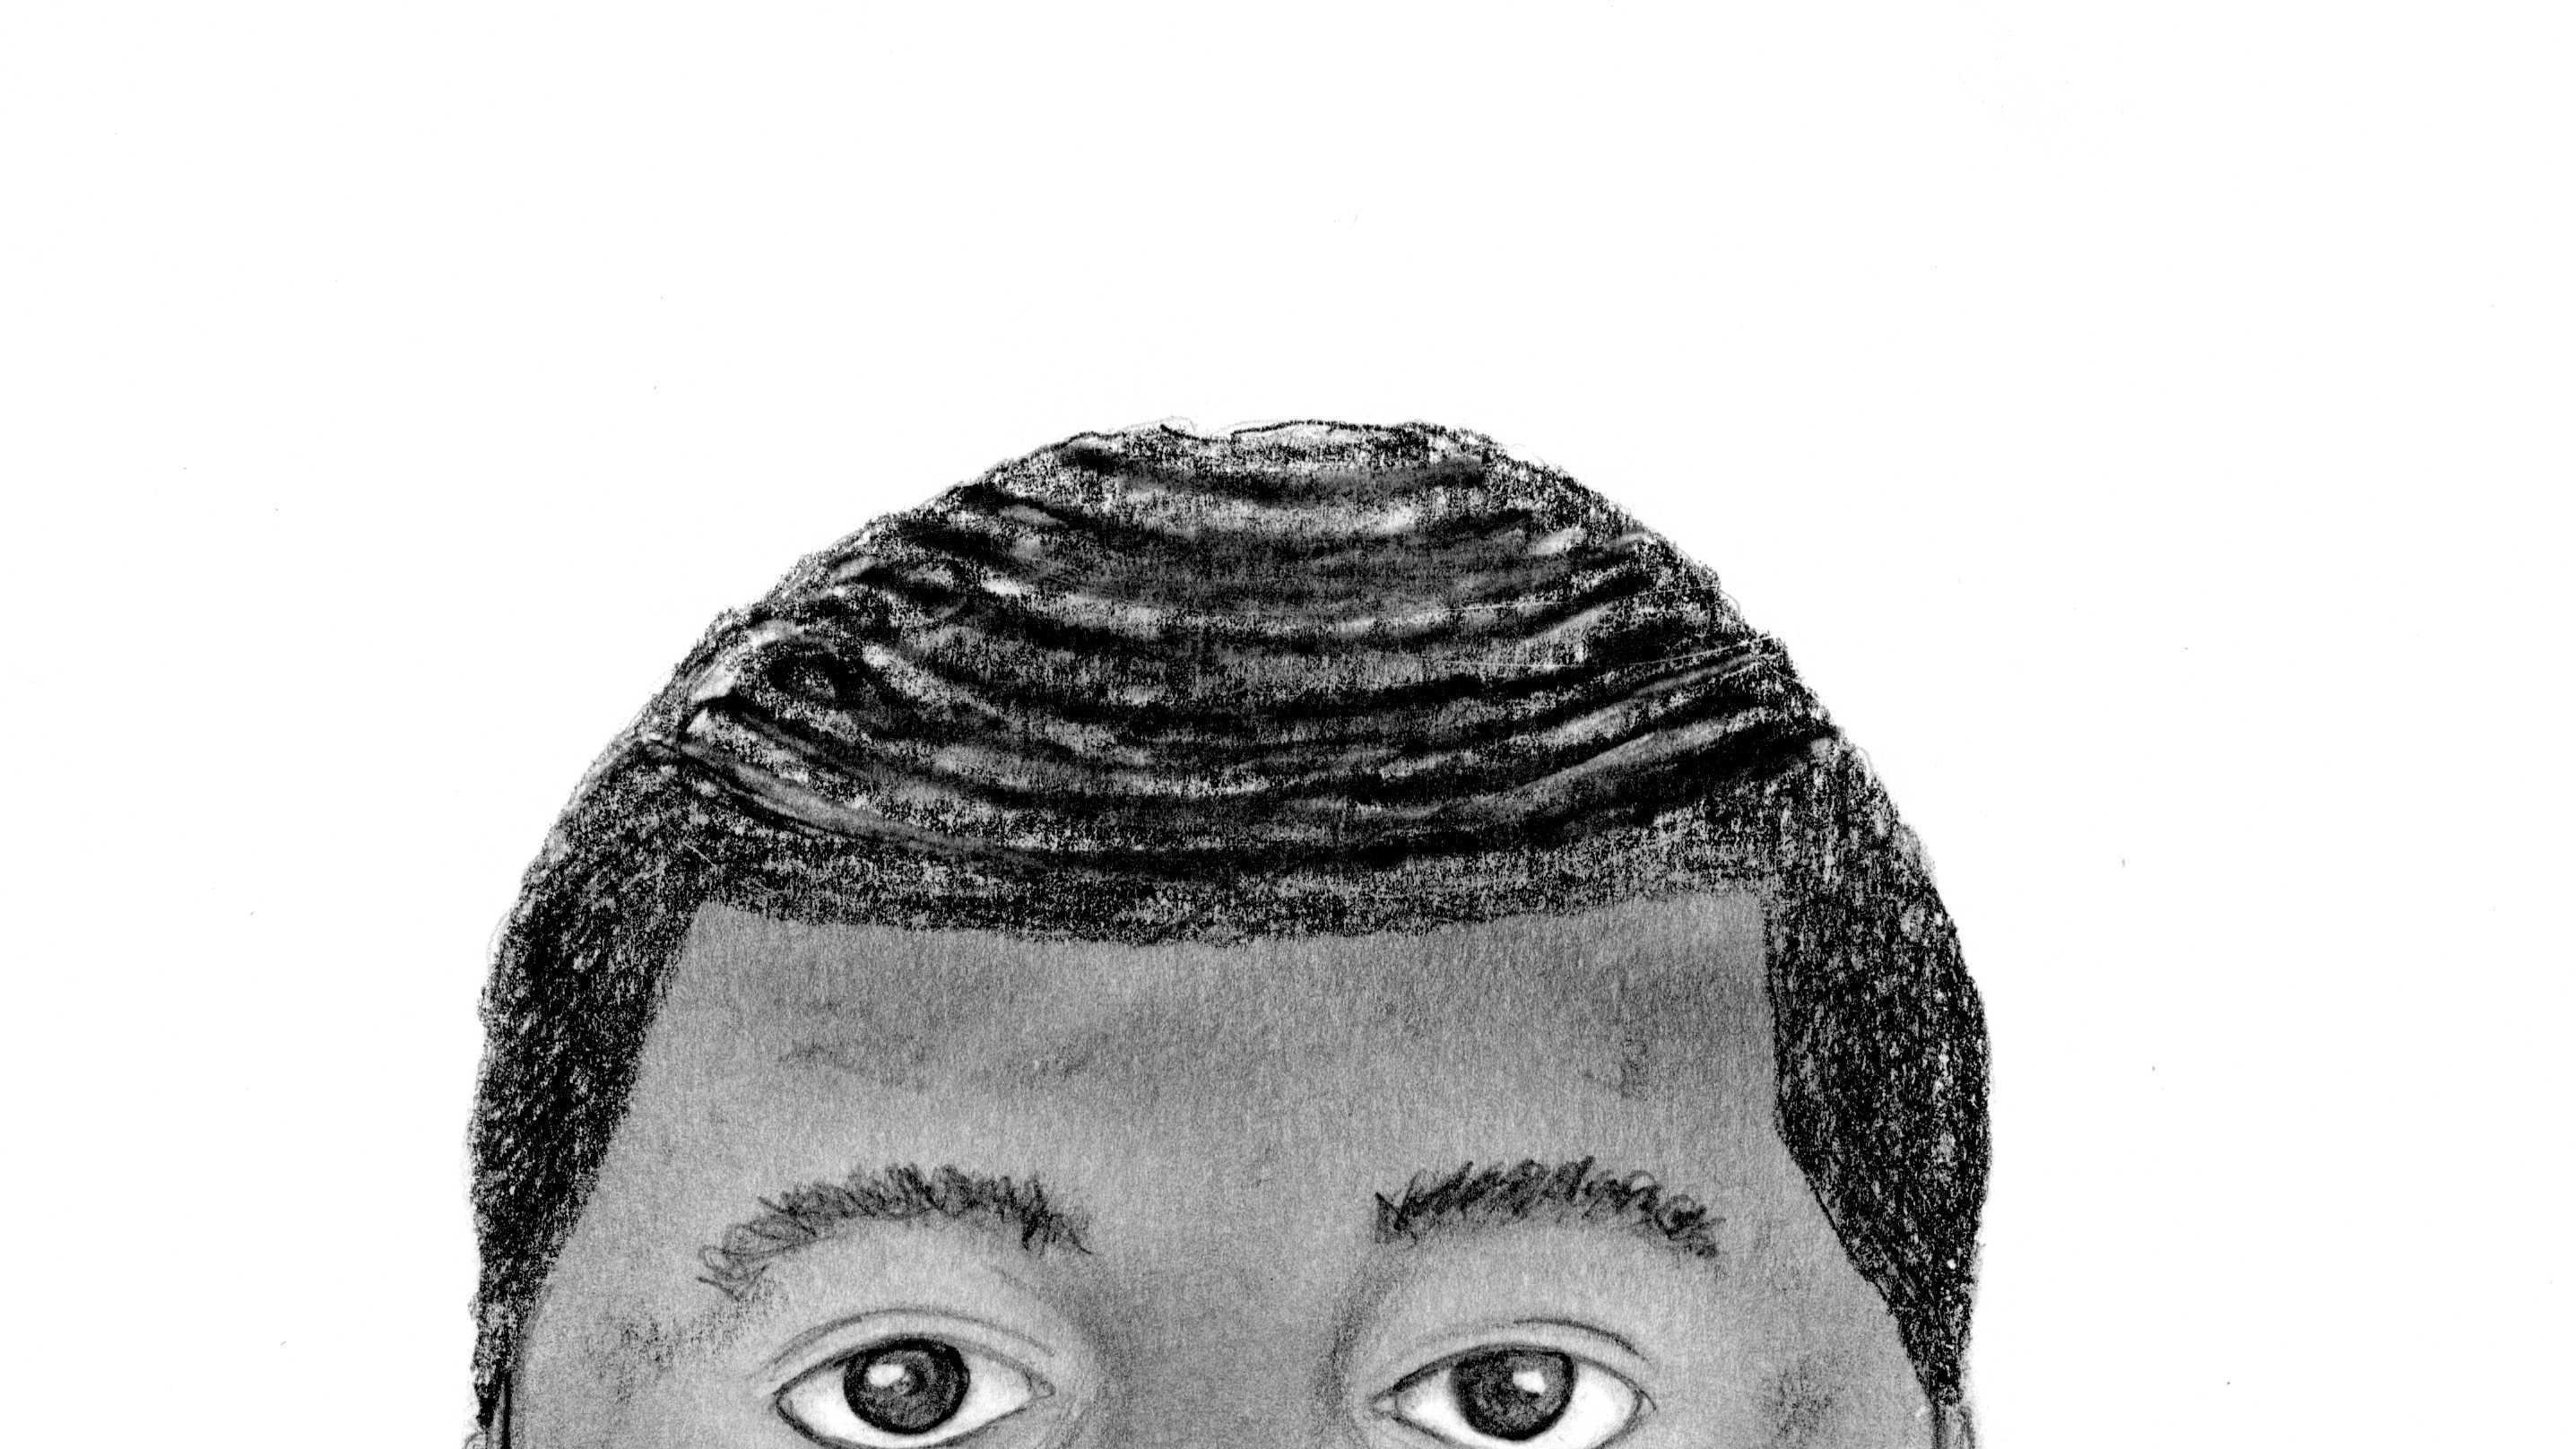 The Sacramento County Sheriff's Department released a sketch of an armed man suspected of sexually assaulting two women in the North Highlands area on Sept. 22, 2015.